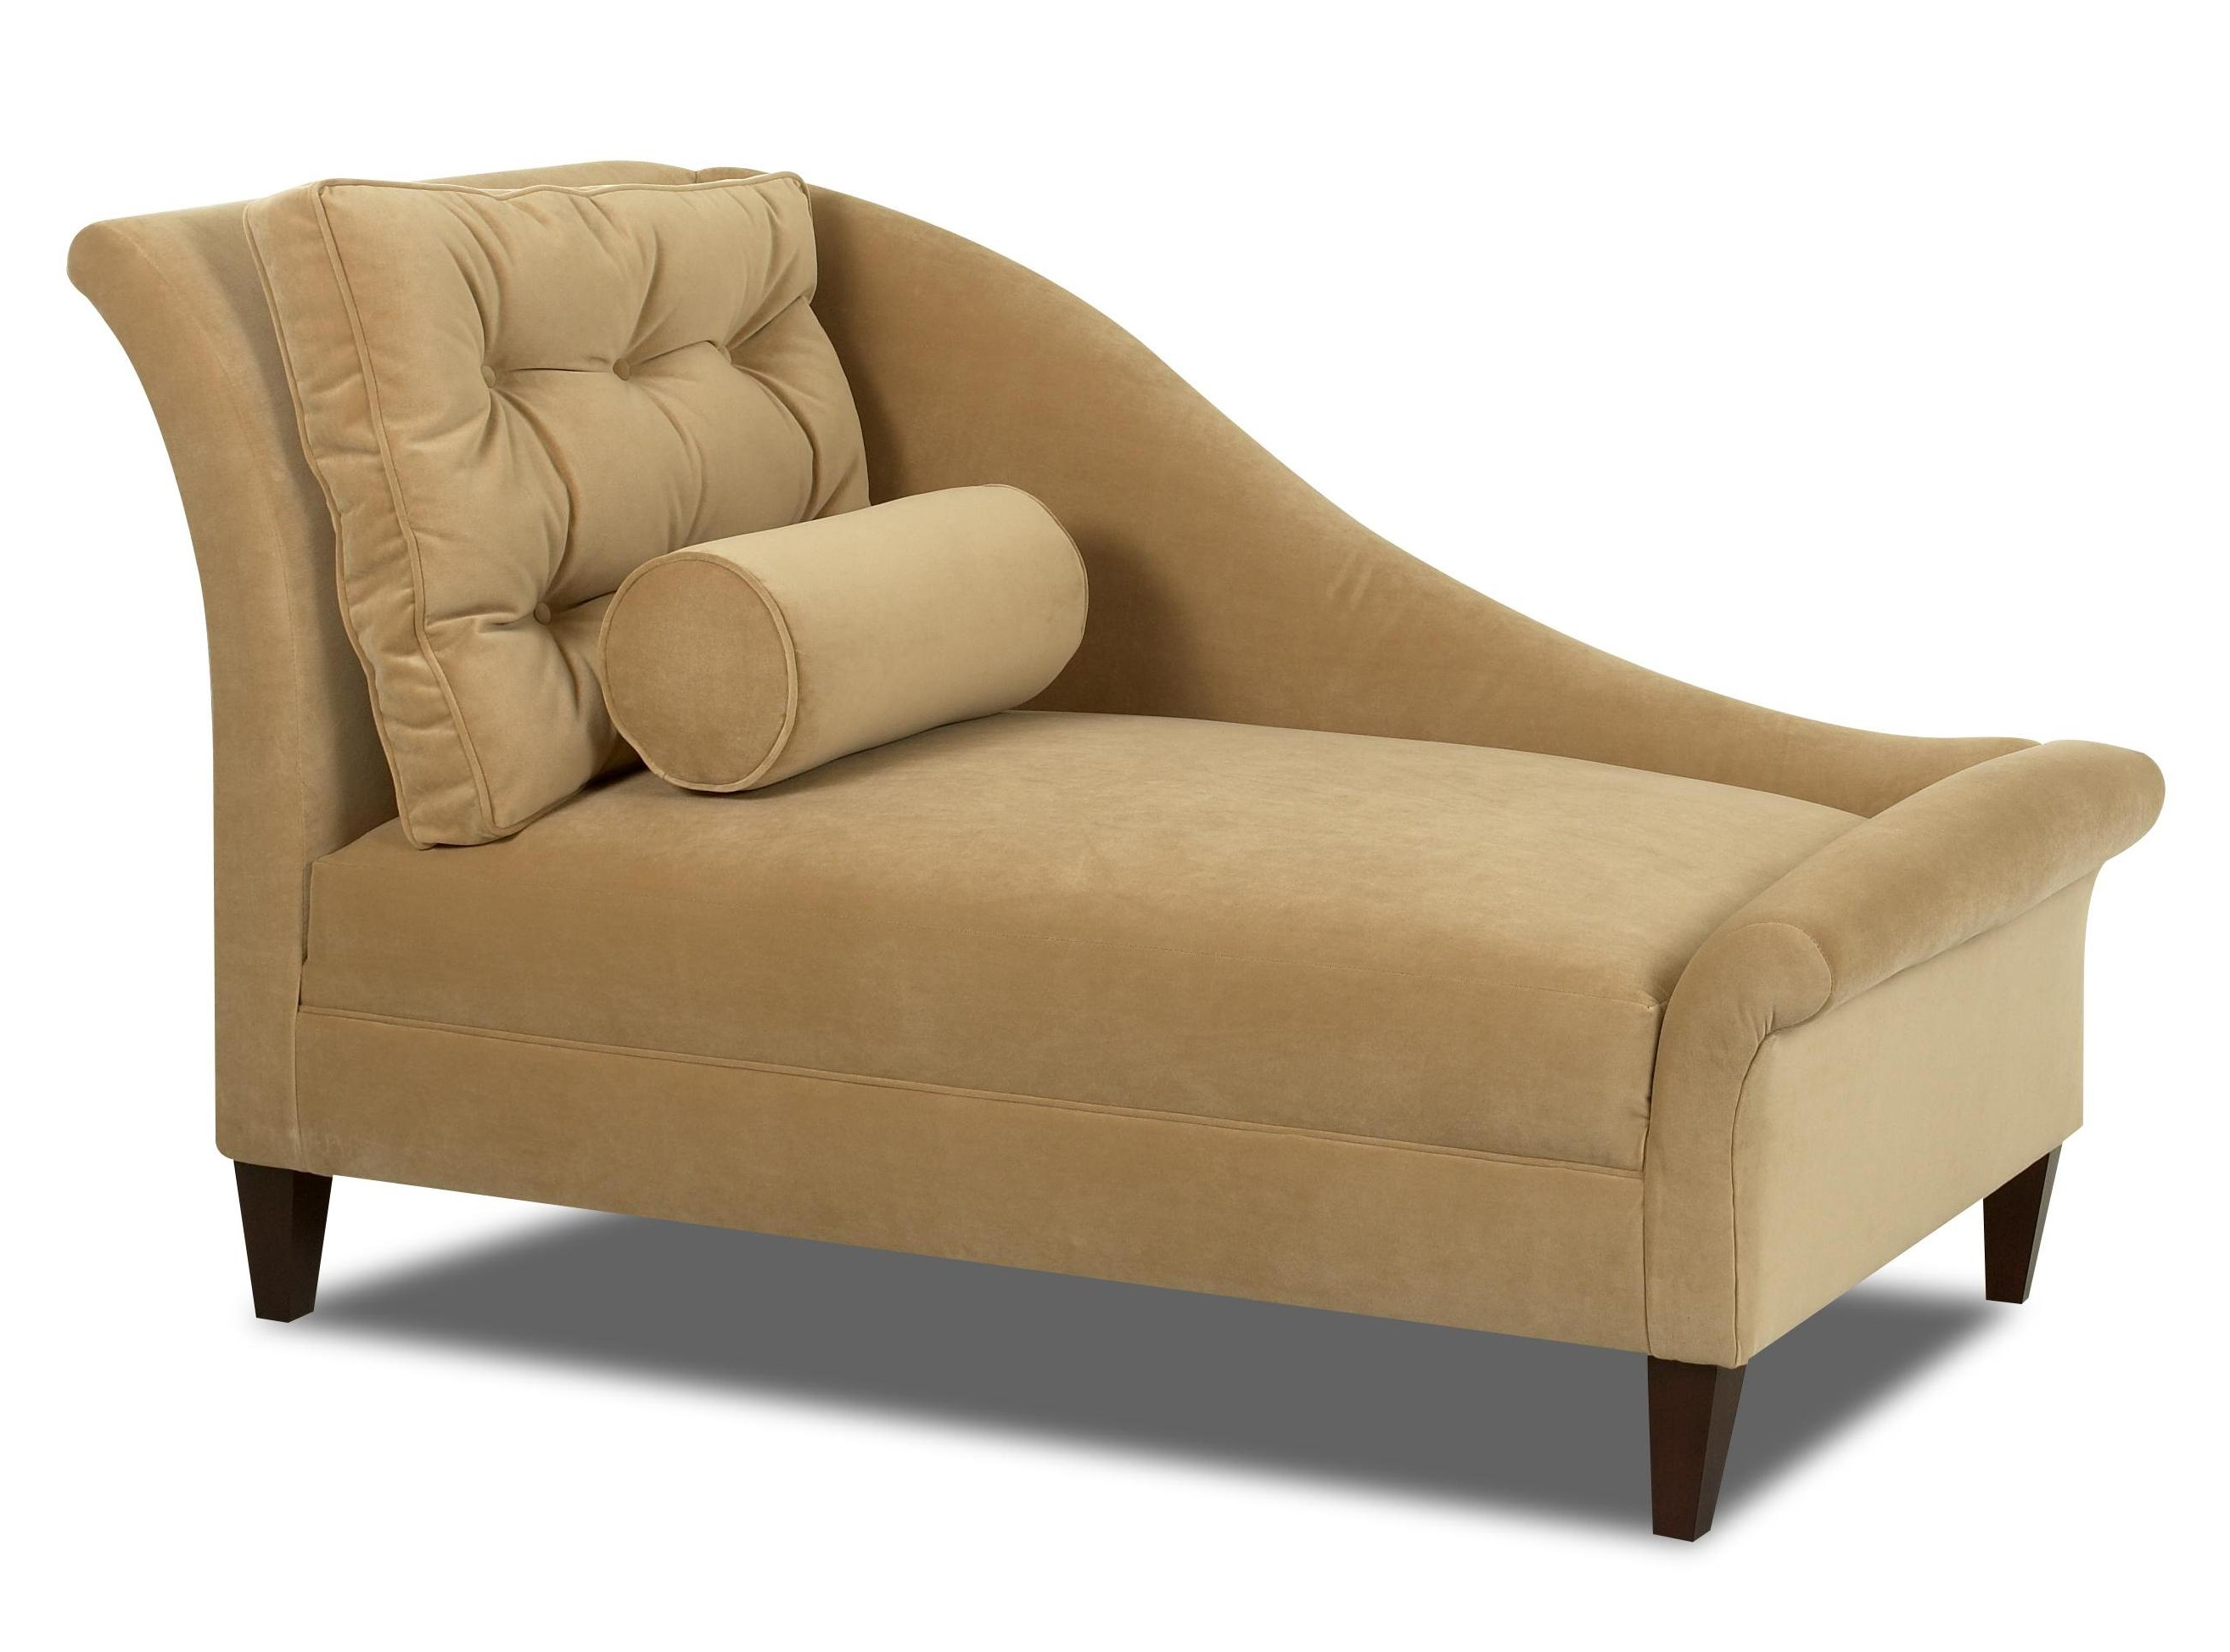 Convertible Chair : Living Room Lounge Chair Sitting Chairs Lounge Regarding Fashionable Chaise Lounge Chairs Without Arms (View 8 of 15)